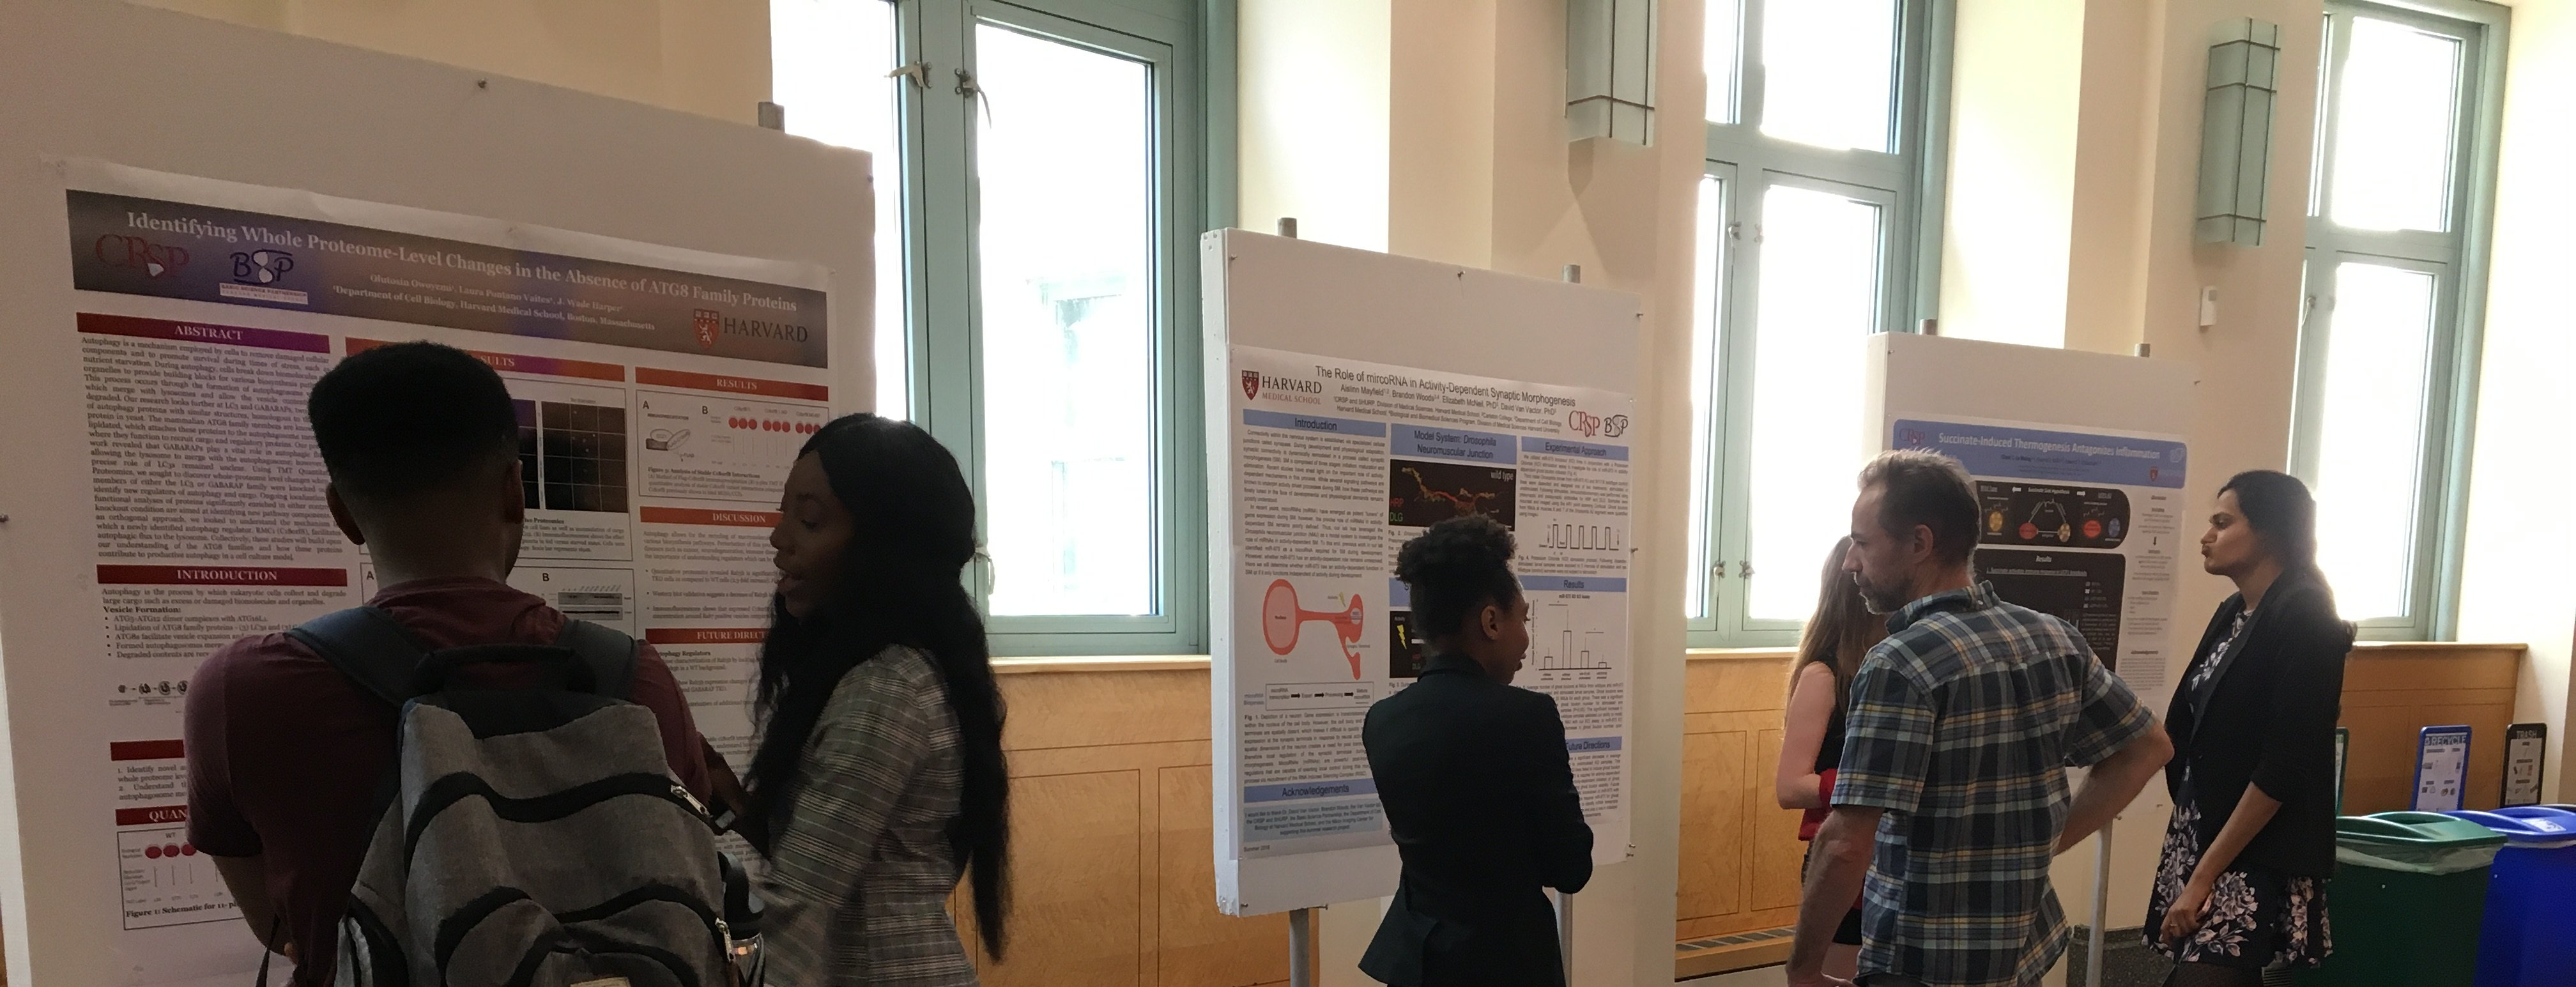 CRSP students present their summer research at a poster session.